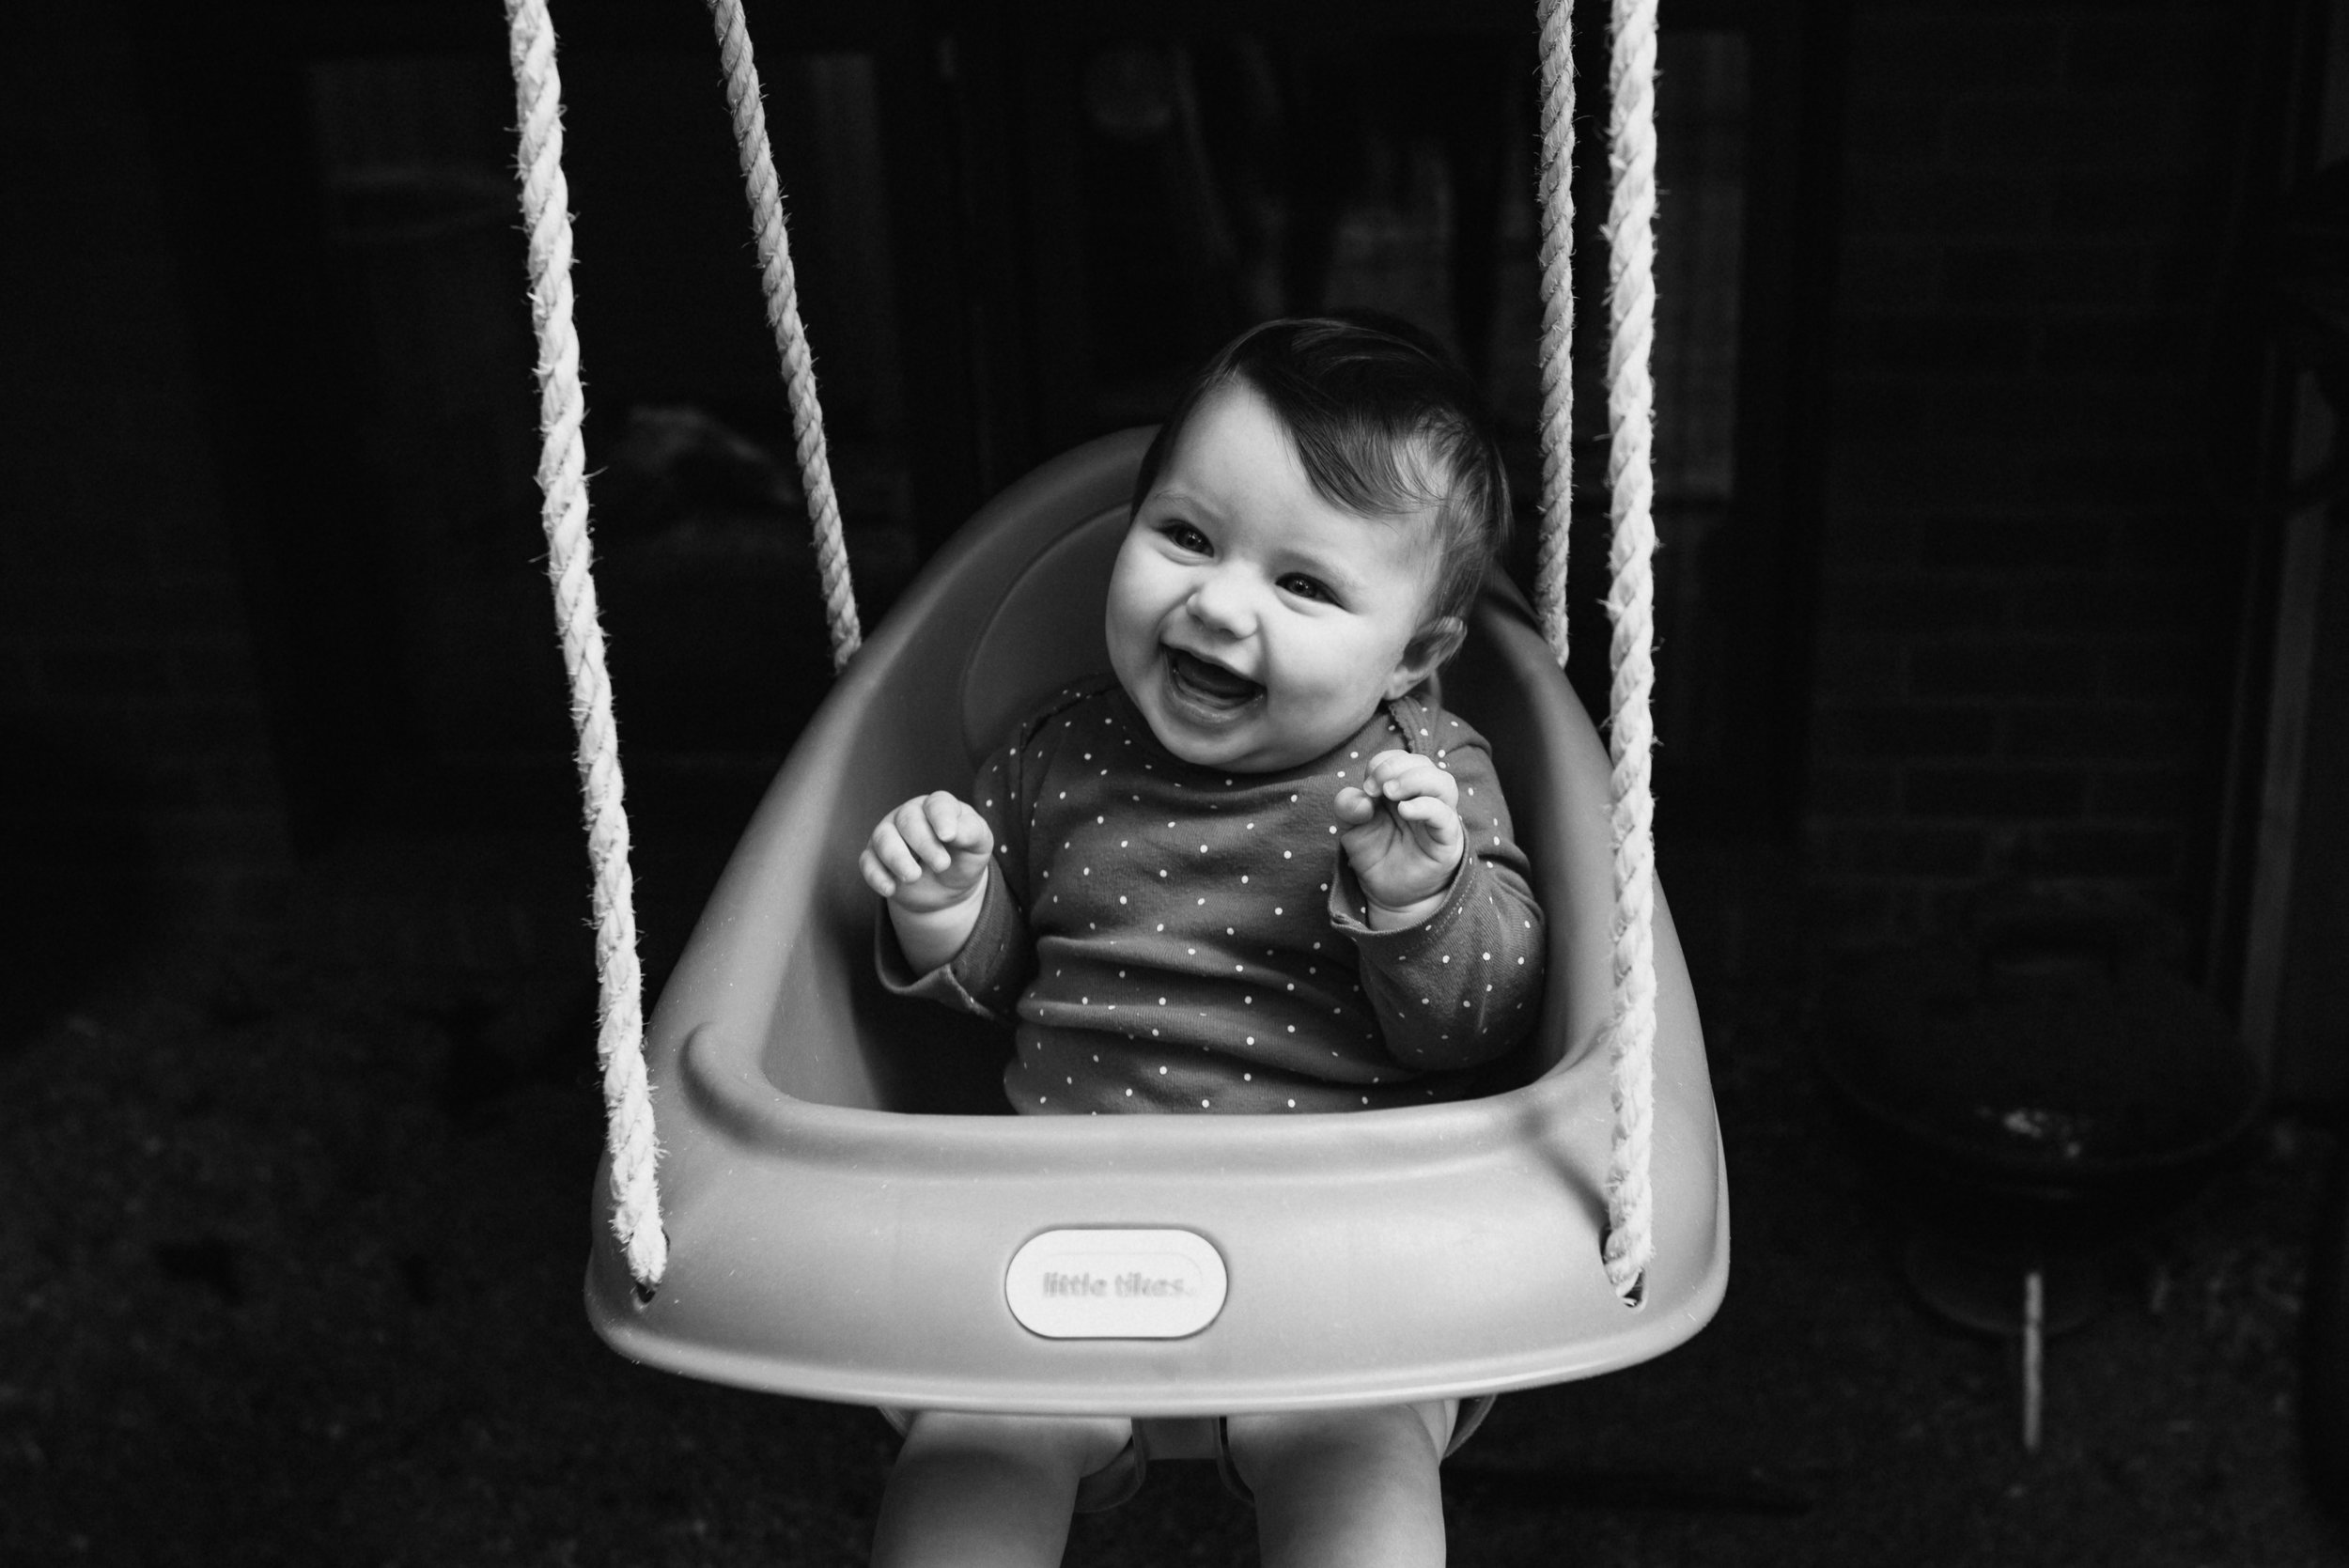 My daughter Luna at 7 months old, loving her first swing.